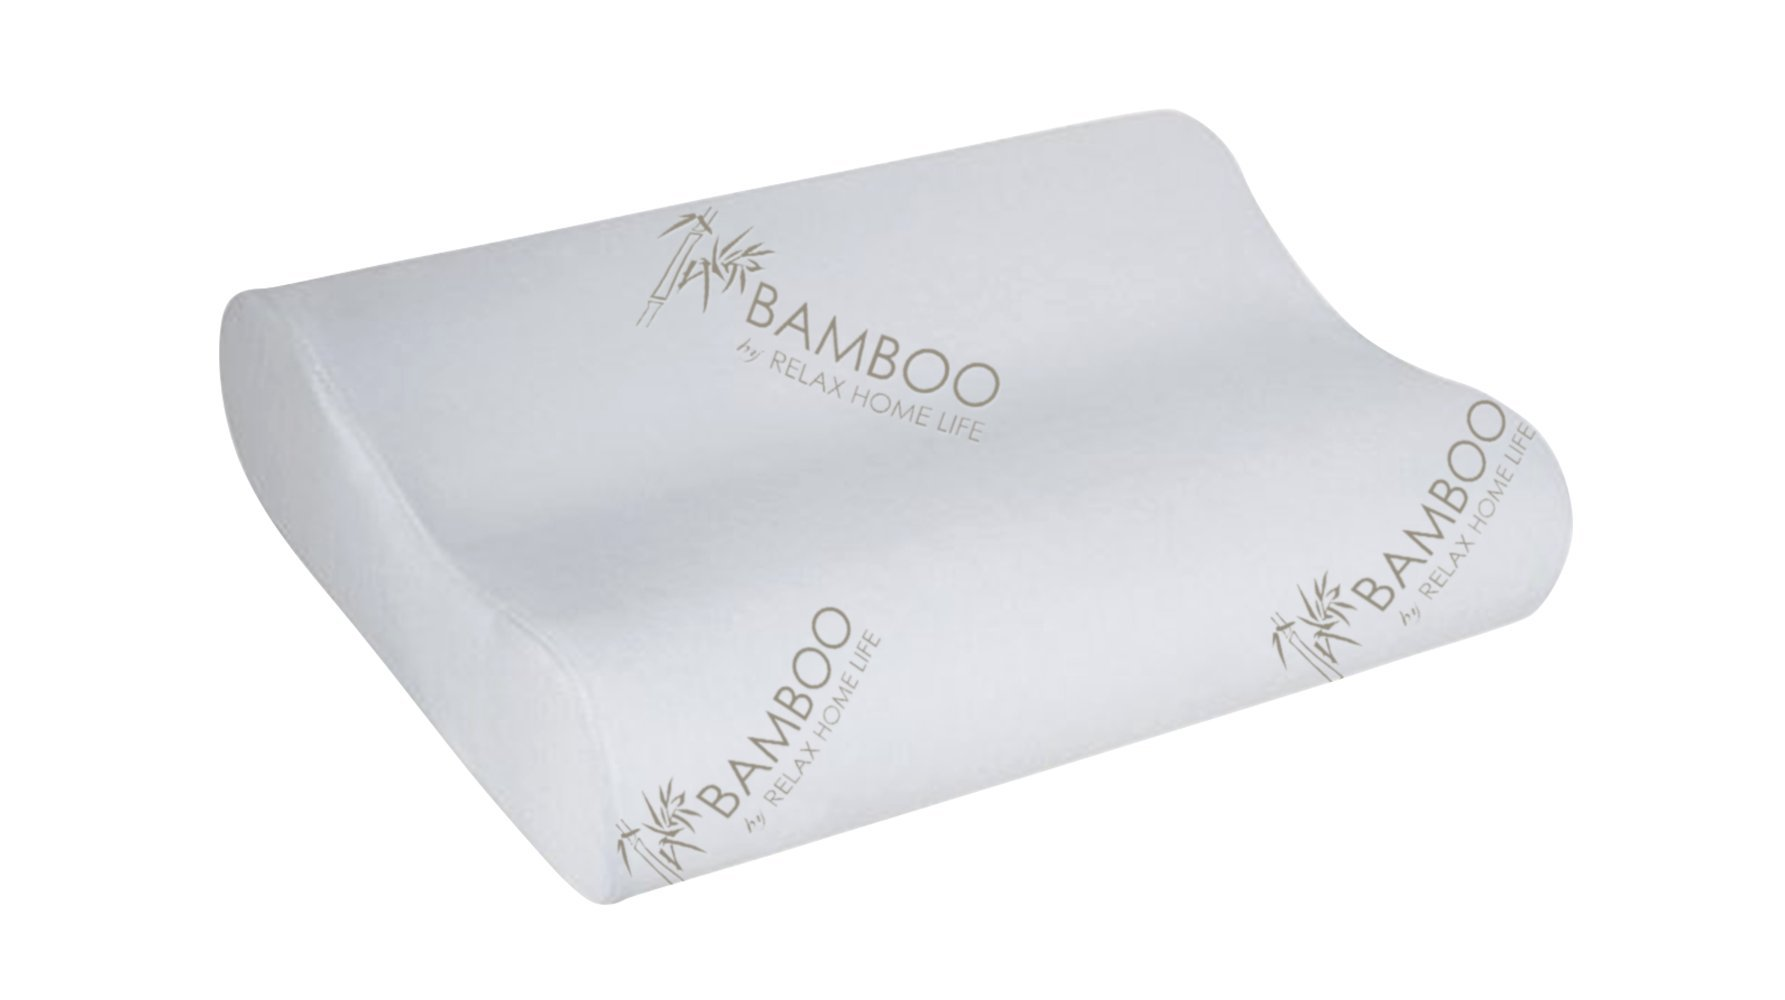 Relax Home Life Cervical Contour Memory Foam Bamboo Pillow | Standard Size | Stay Cool Removable Cover (Standard)